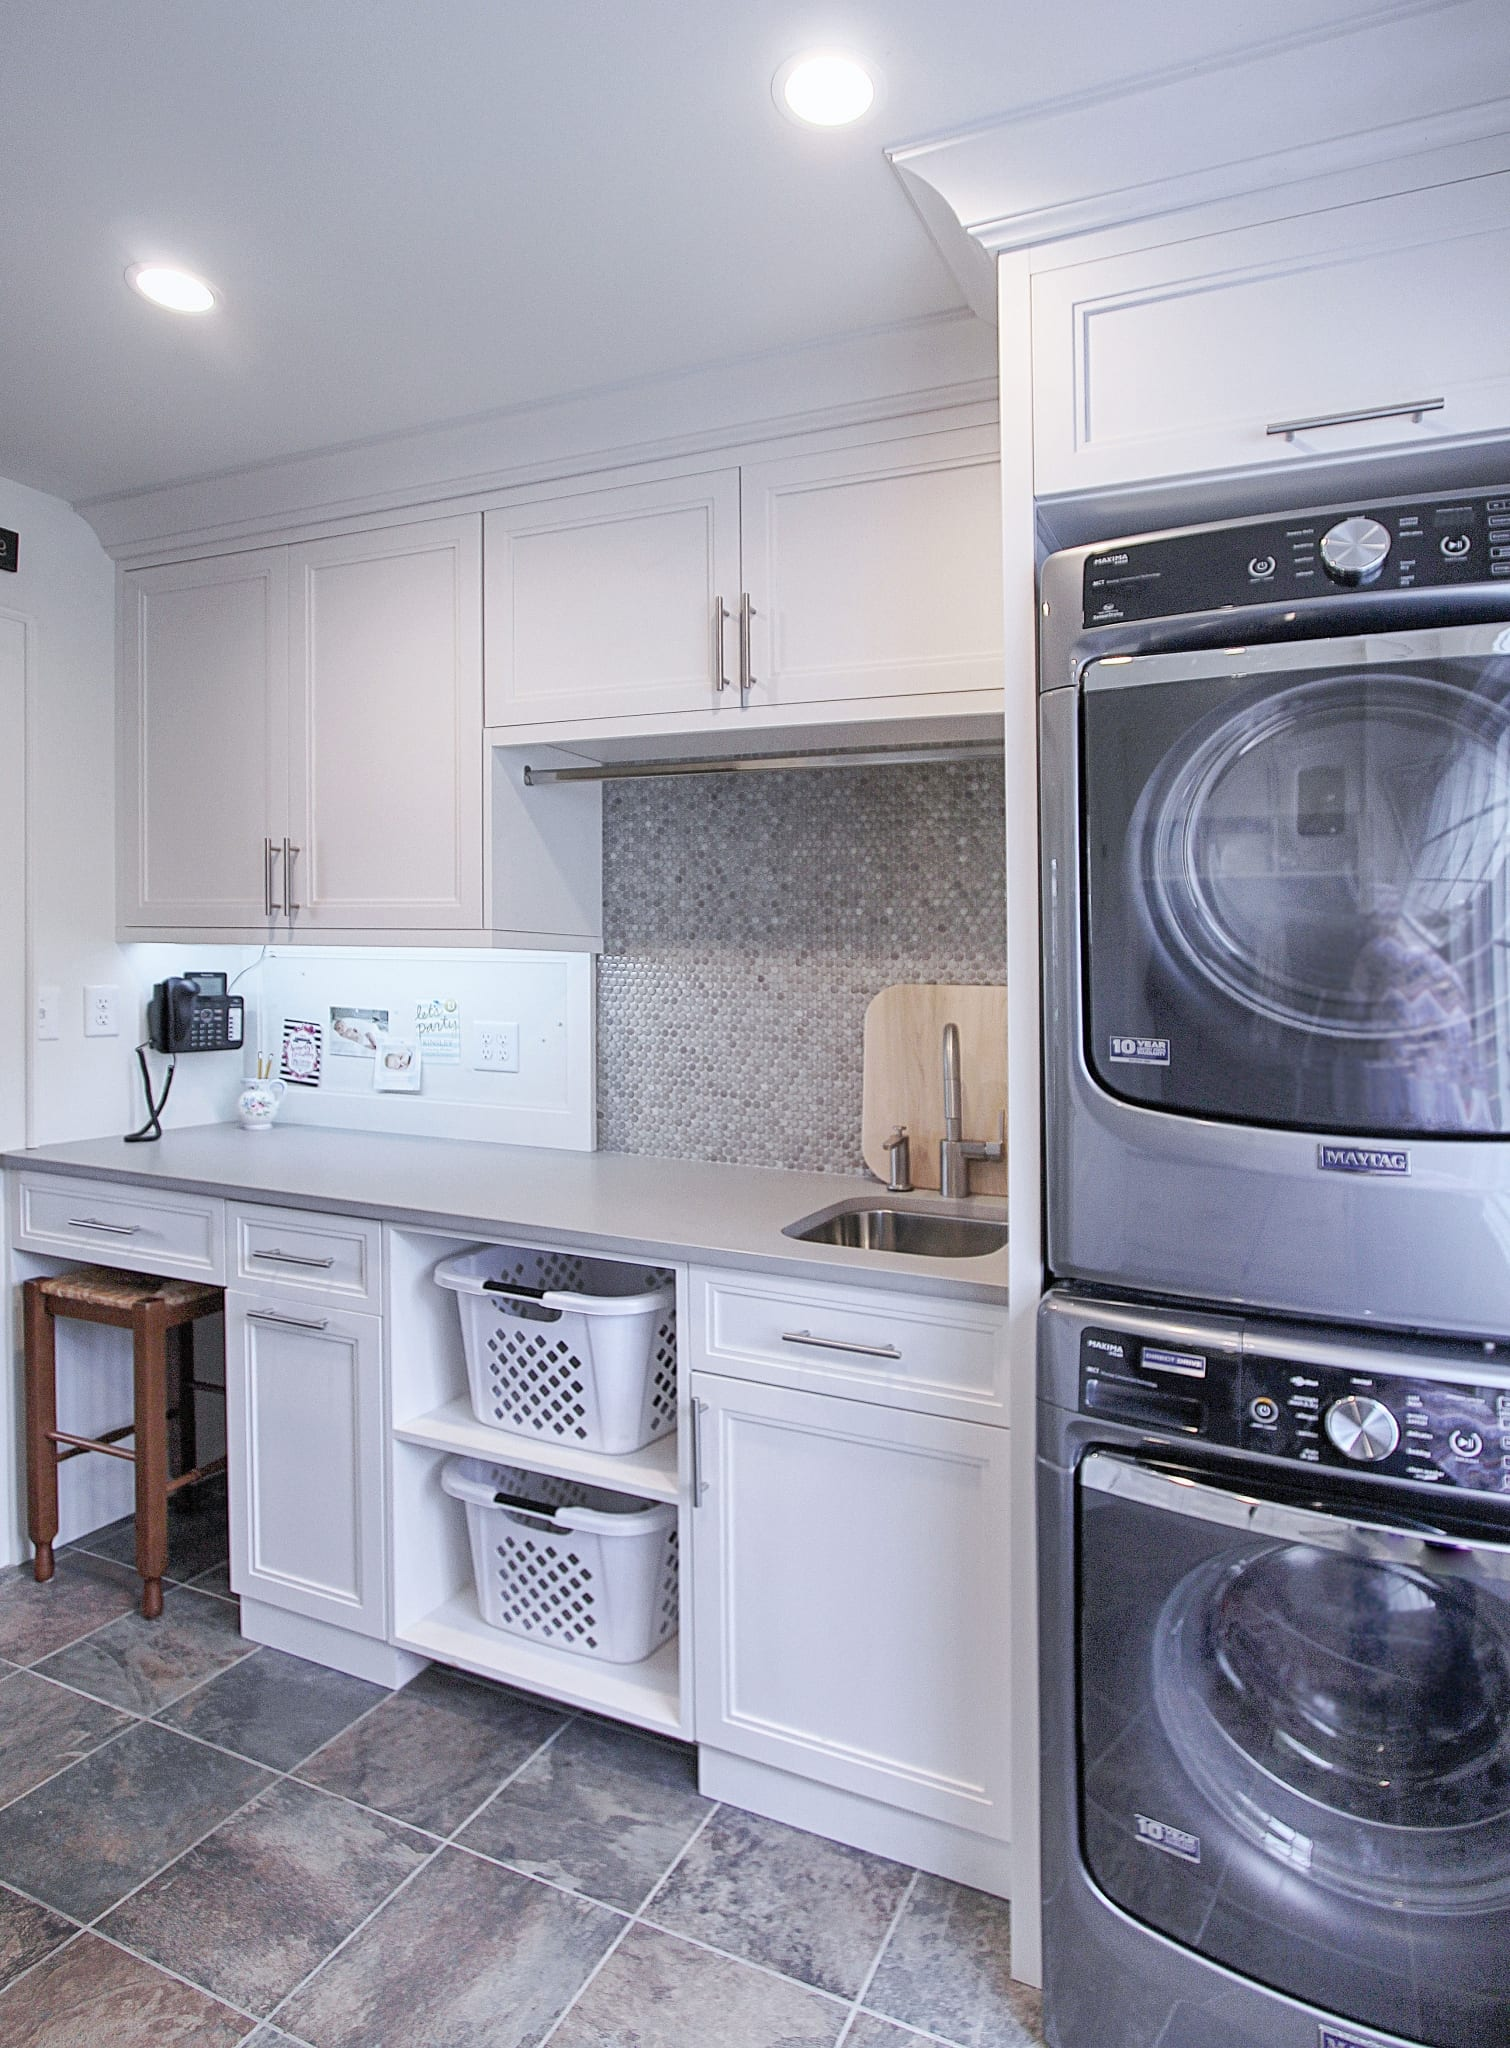 Kitchen Laundry Room Design: Laundry-Room-Bulletin-board-stacked-washer-dryer-remodel